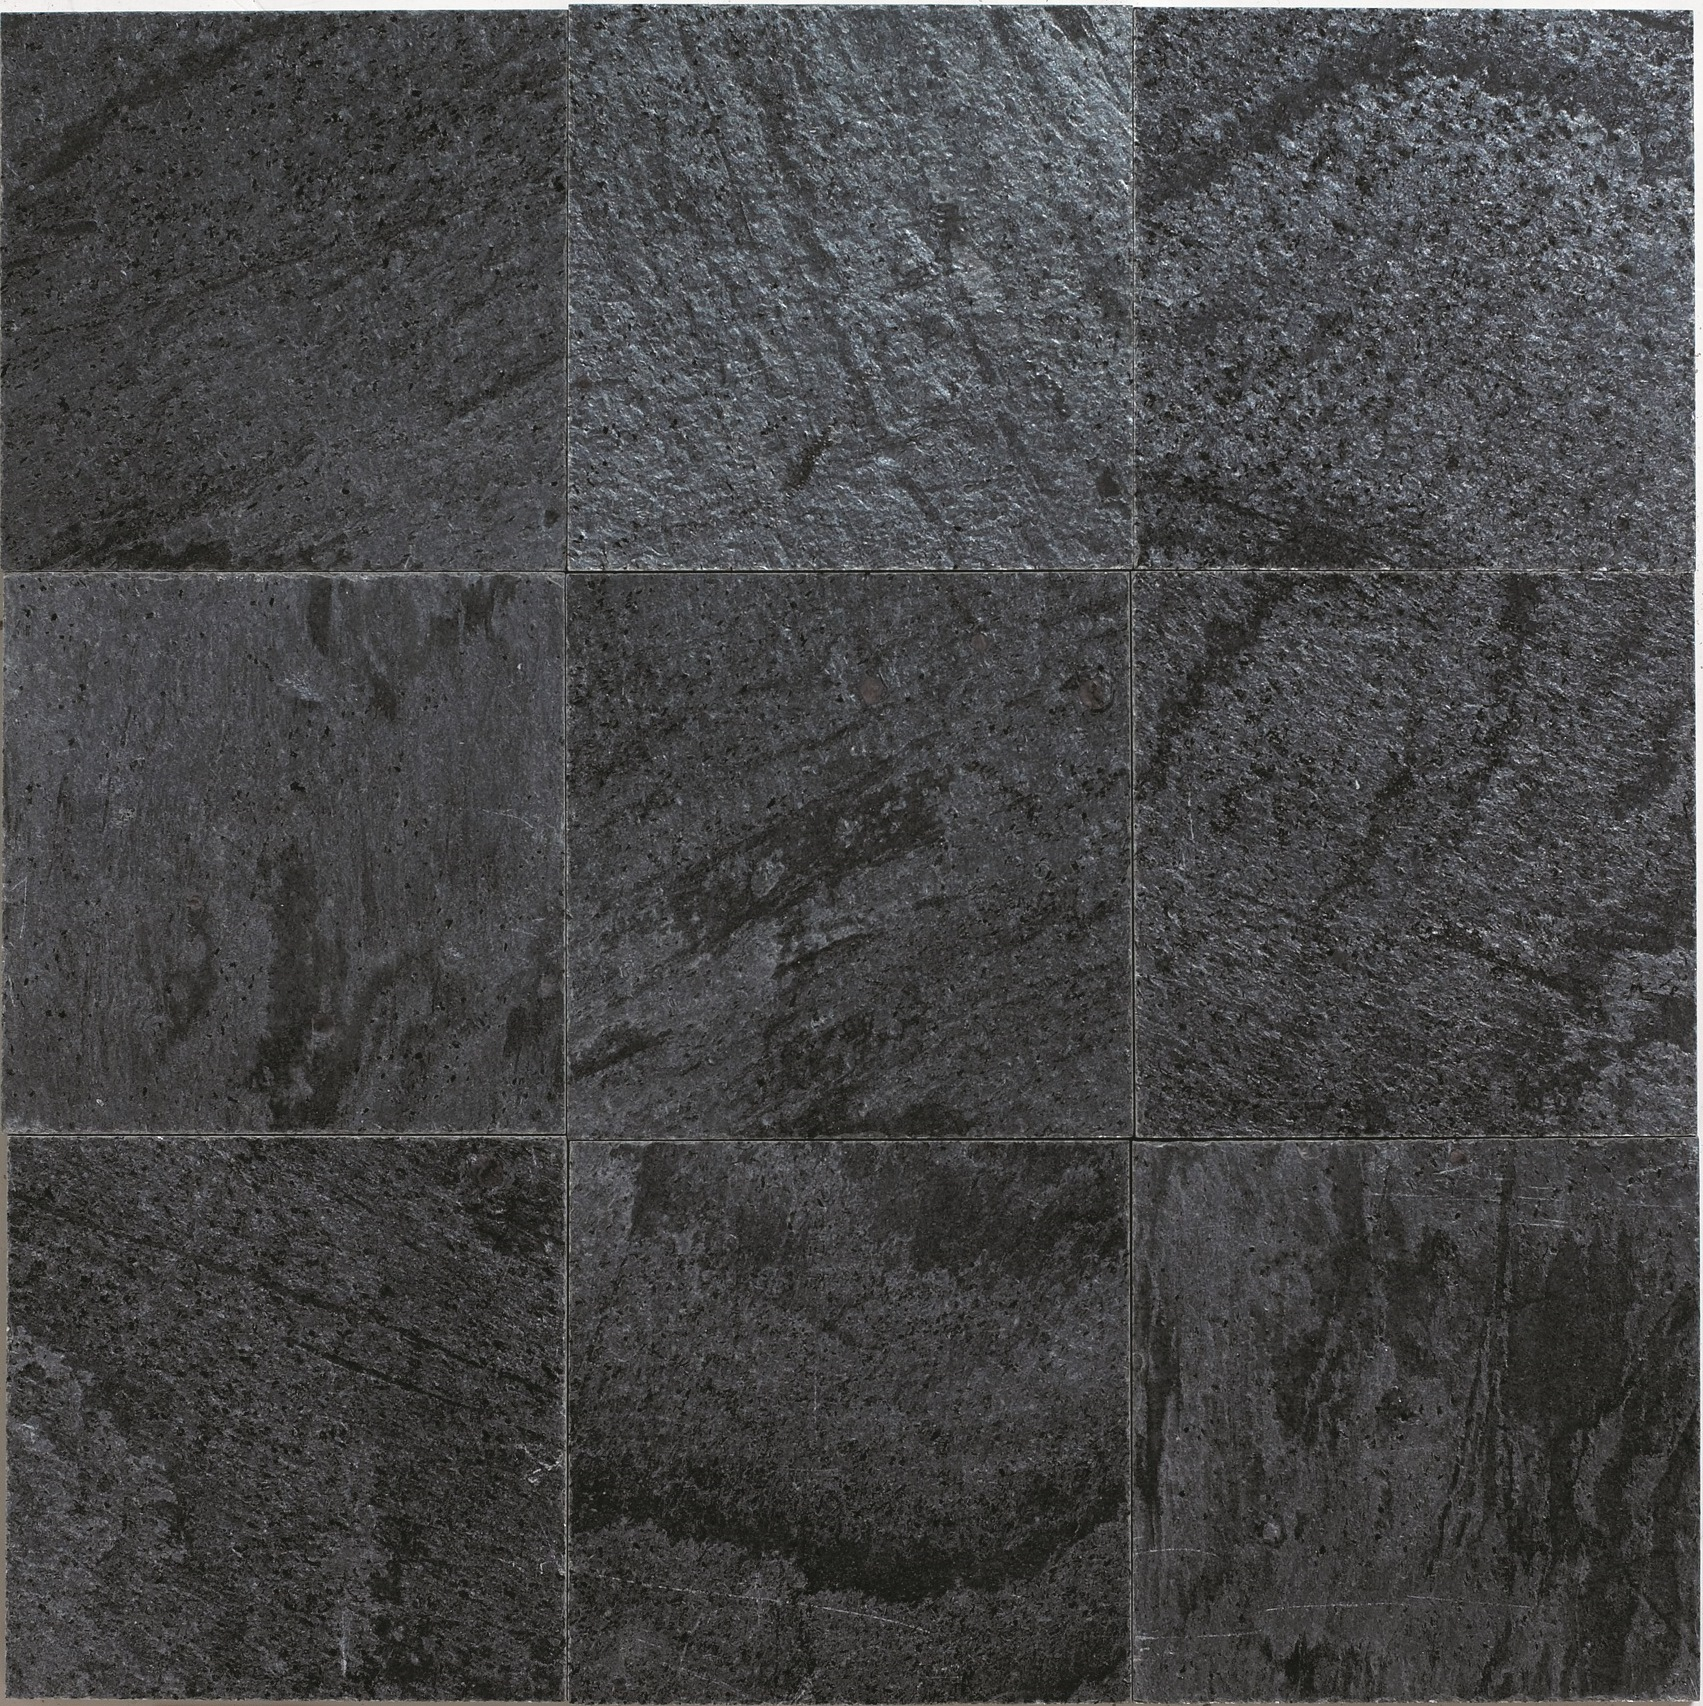 Ostrich Gray Honed Petraslate Tile Amp Stone Is A